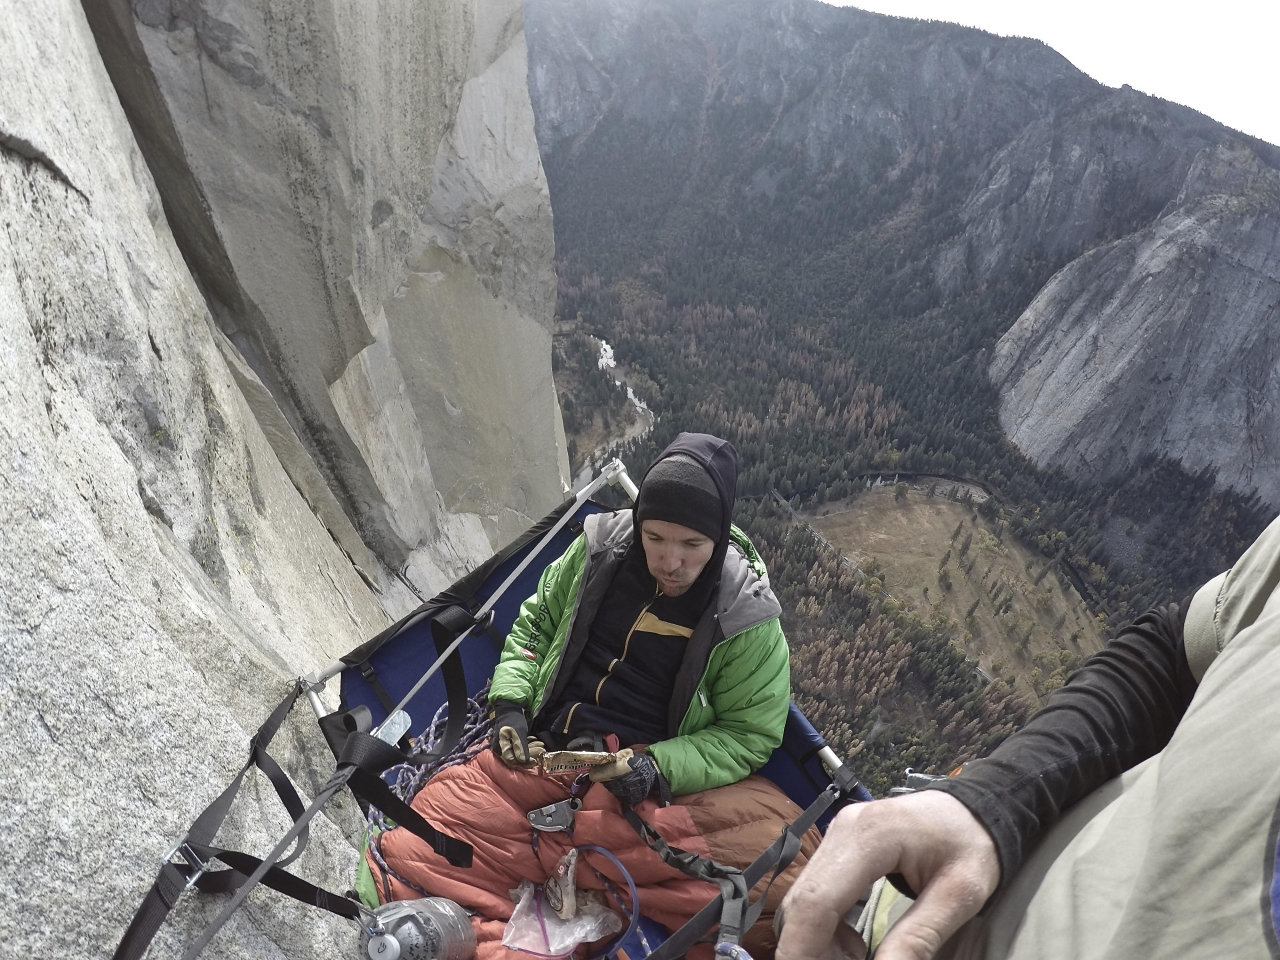 A picture from El Capitan by Mich the K